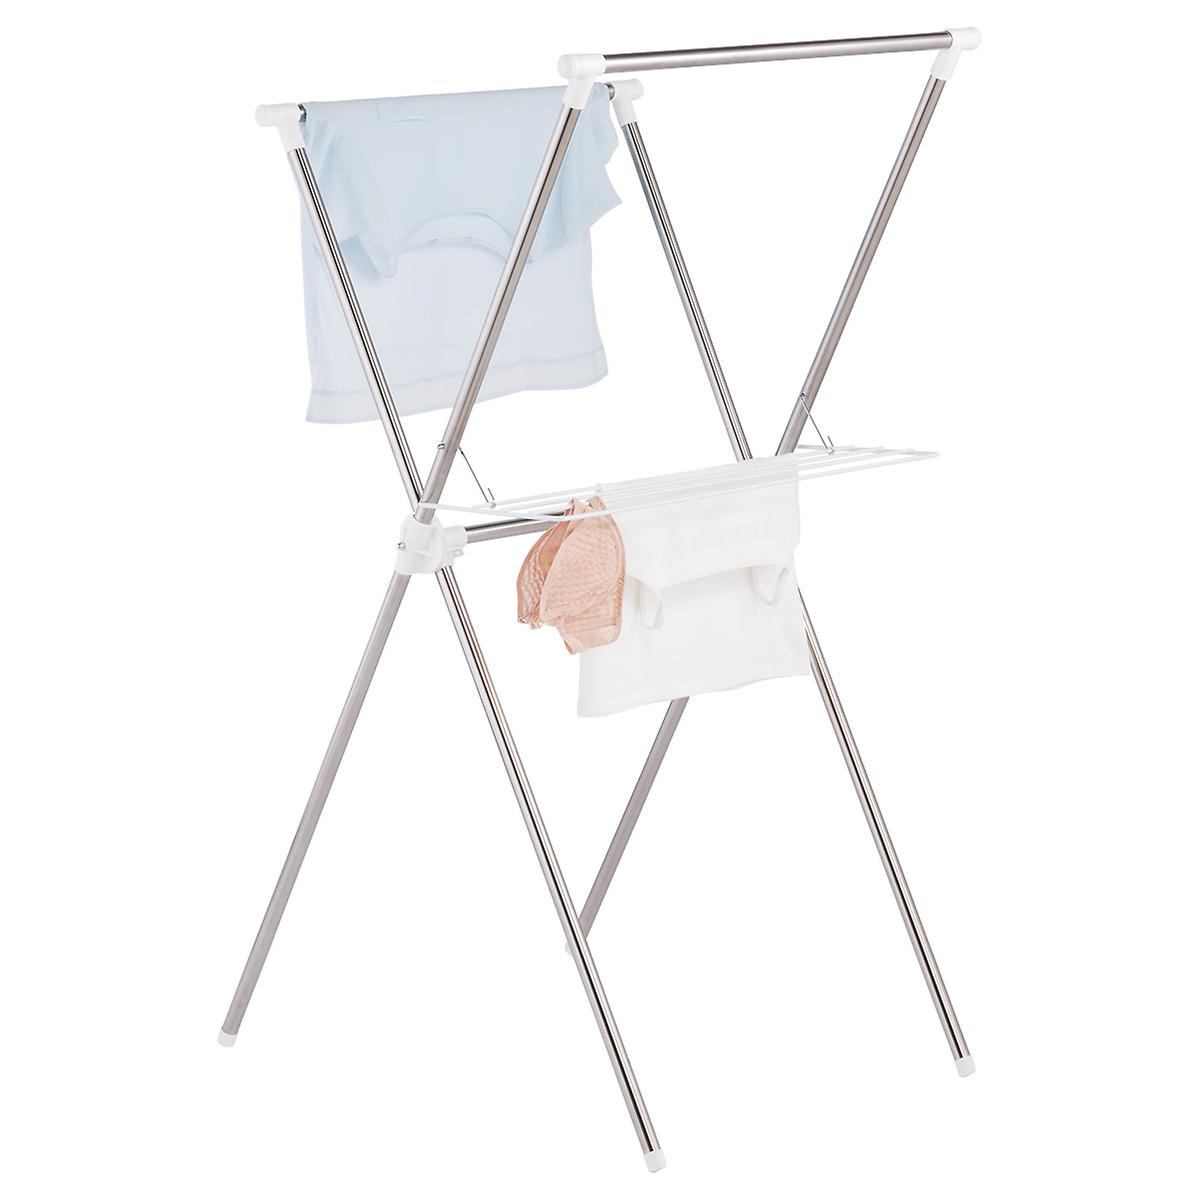 Iris Stainless Steel Folding X Frame Clothes Drying Rack